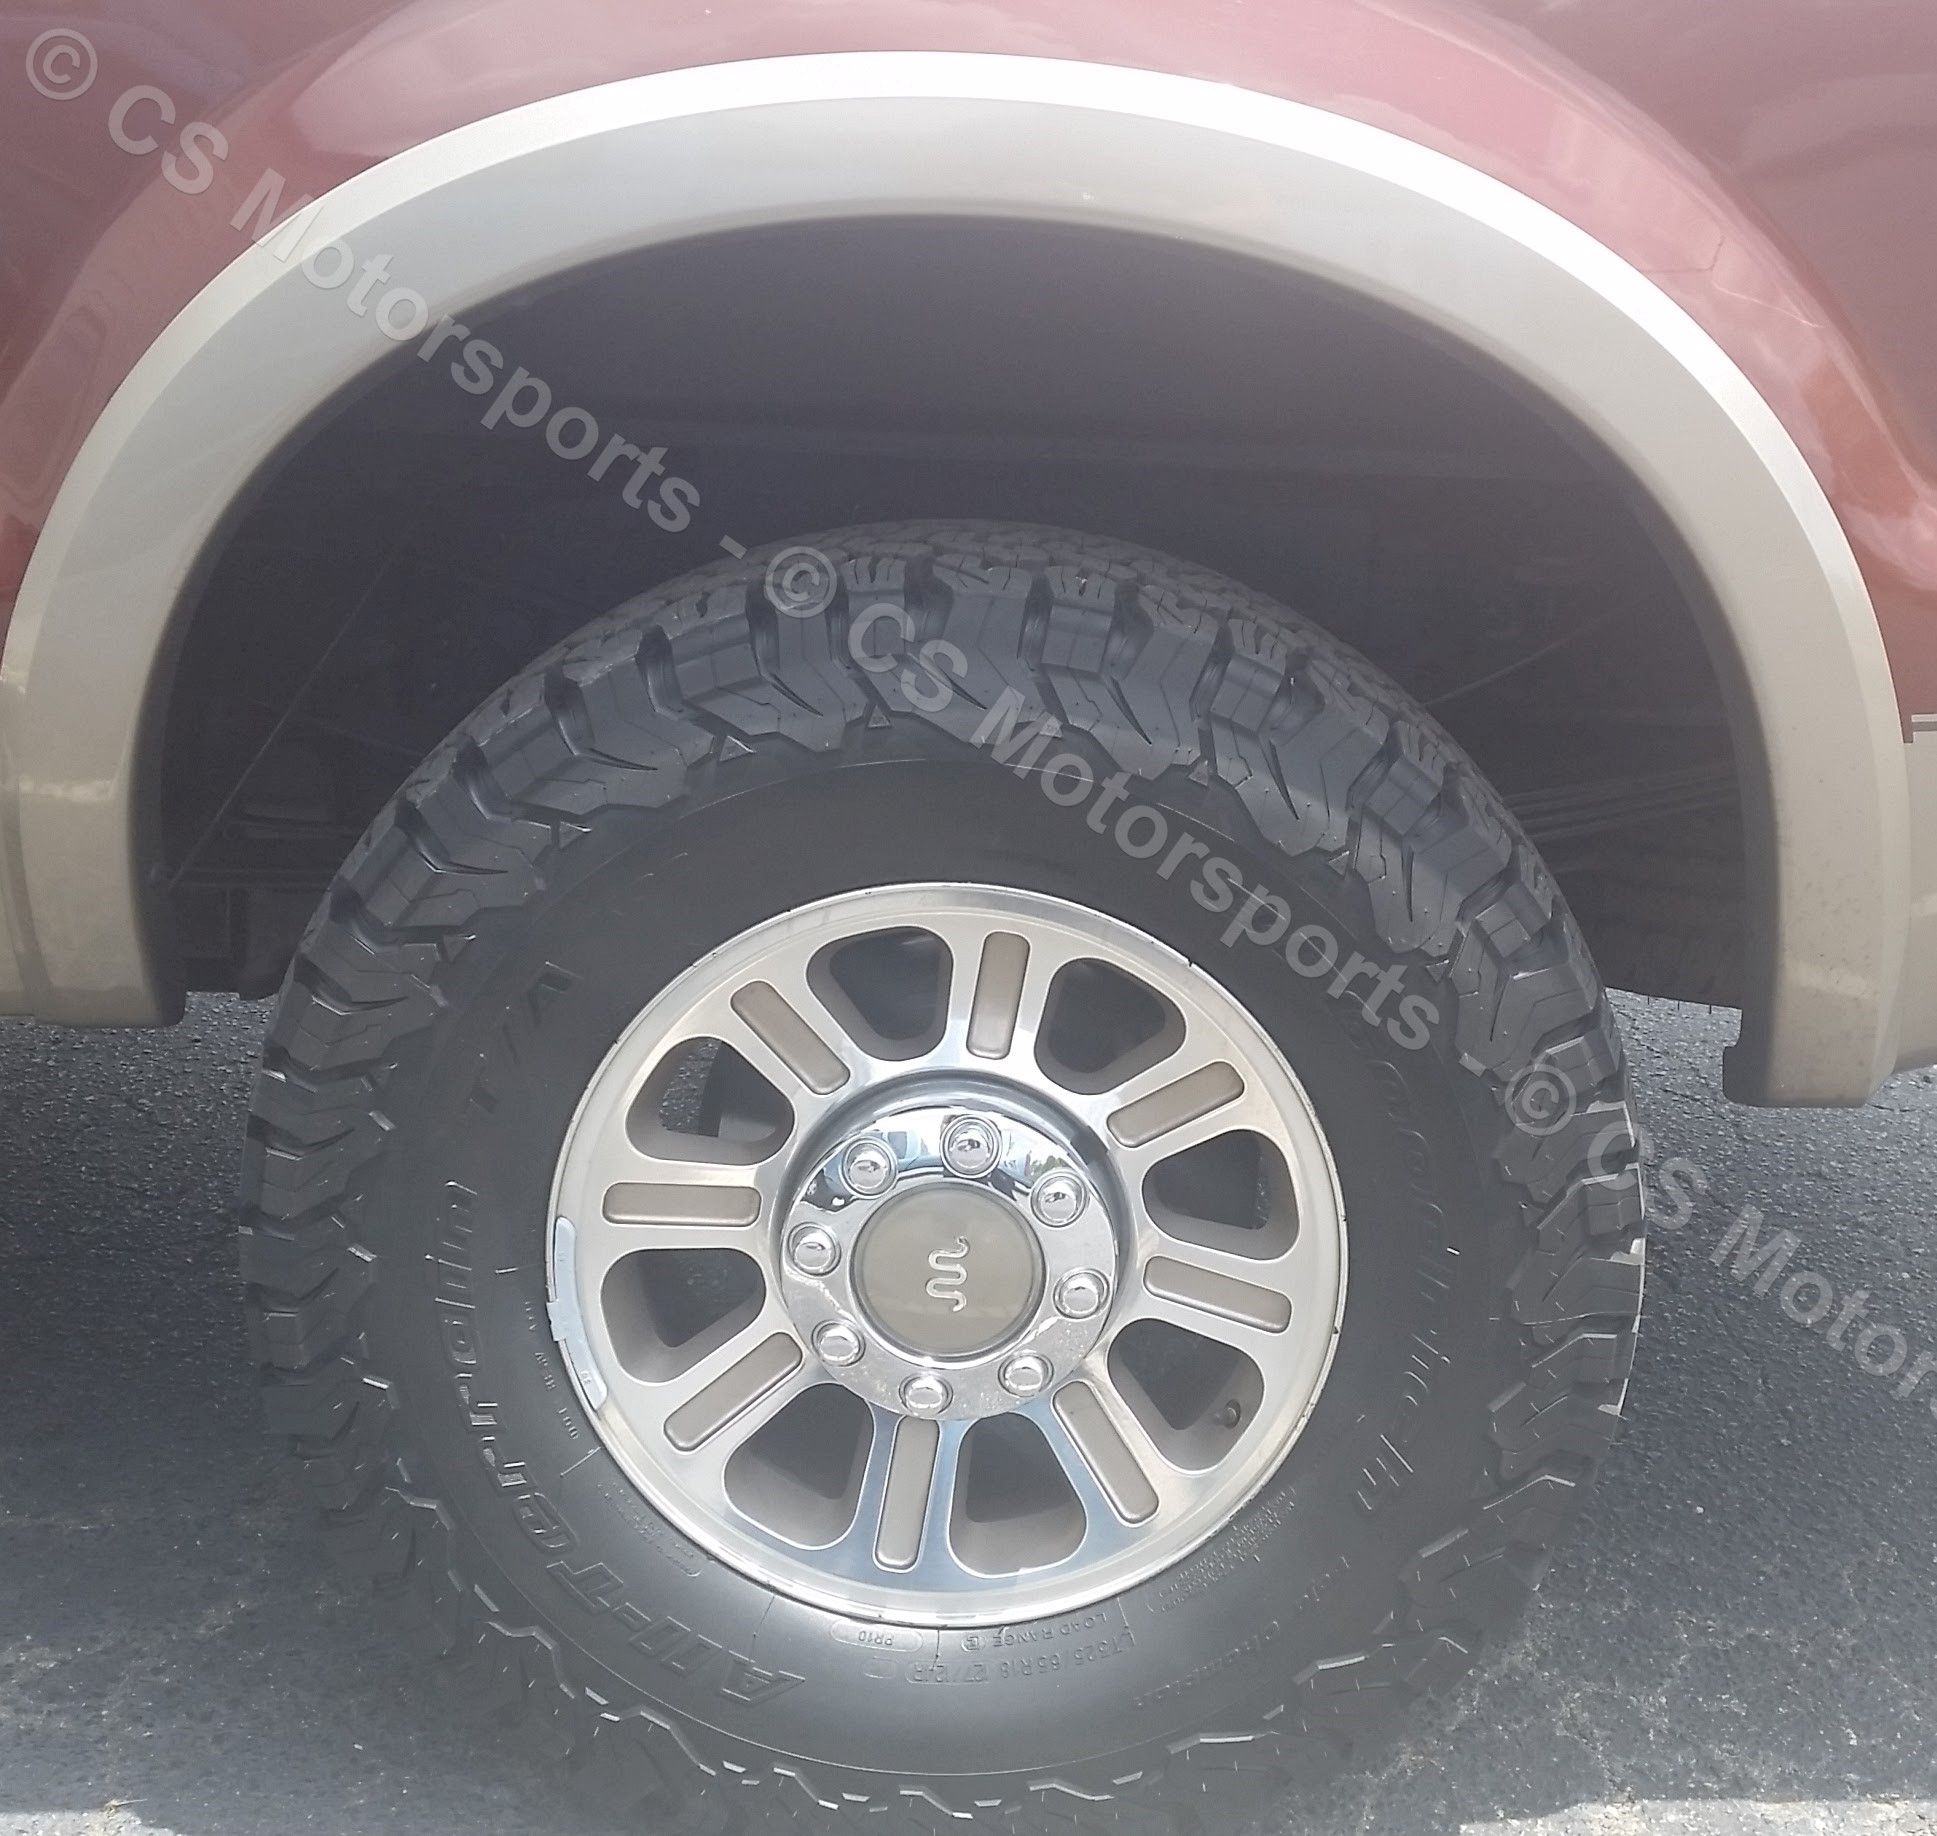 2005 Ford F-250 King Ranch (899)